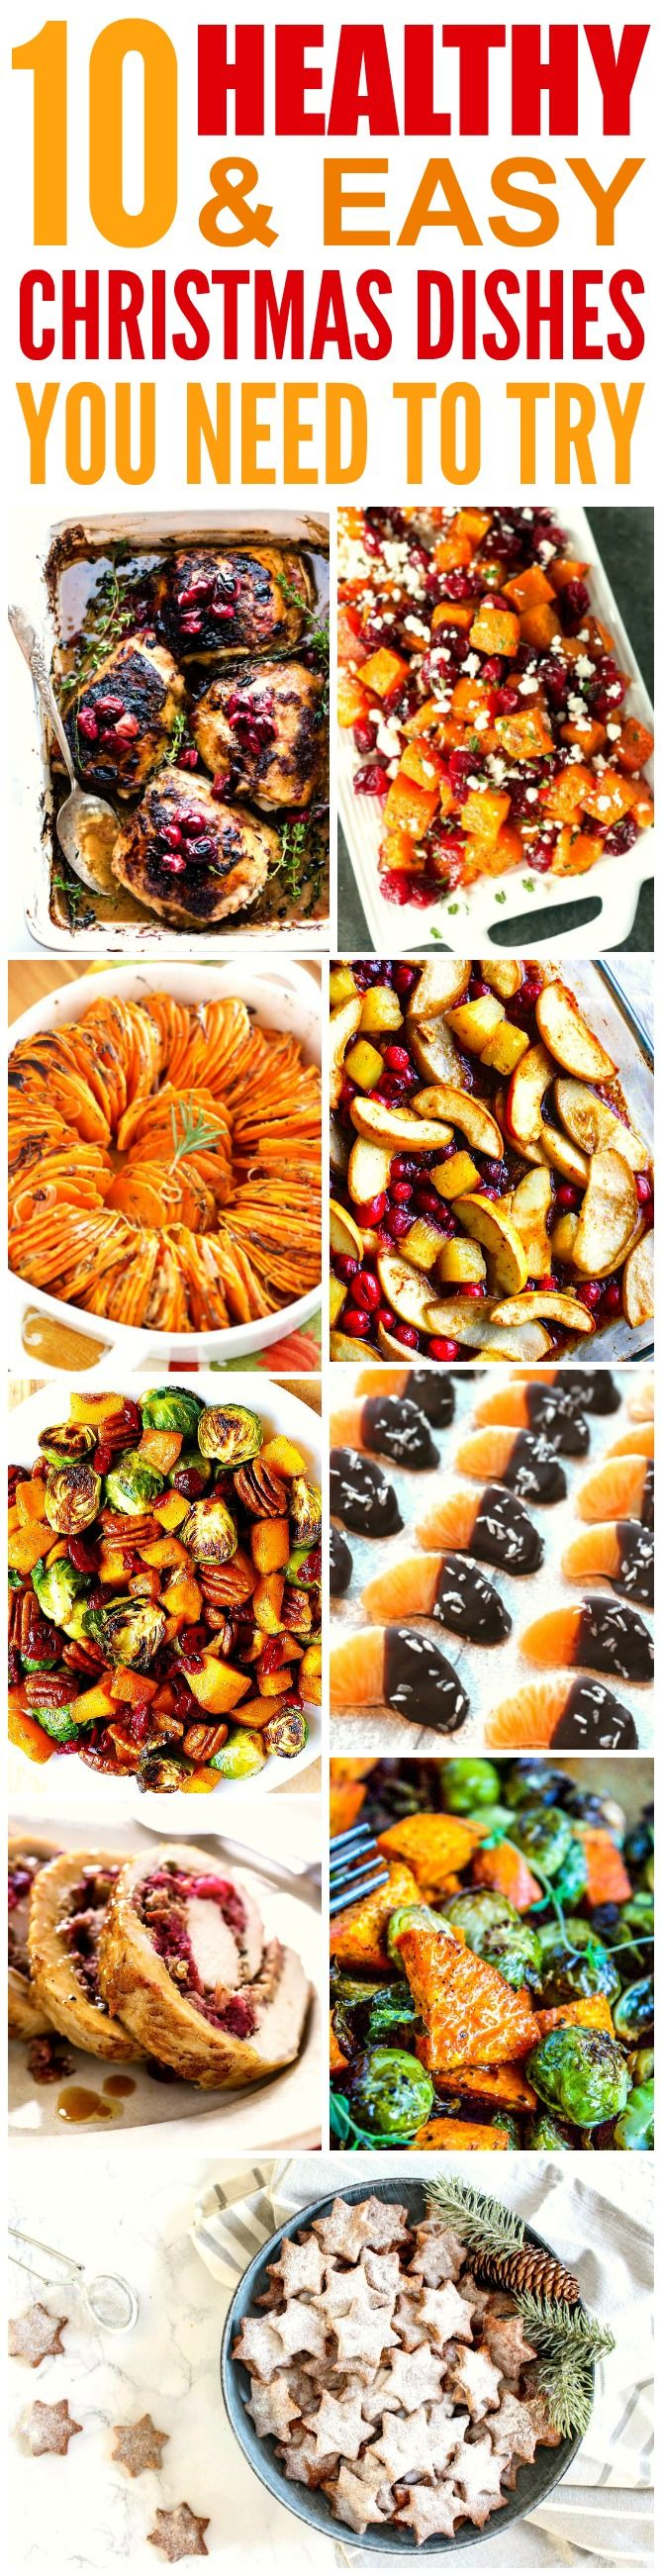 These 10 healthy and easy Christmas recipes are THE BEST! I'm so glad I found these AWESOME dishes! Now I have some great ides for the holidays! Definitely pinning for later!